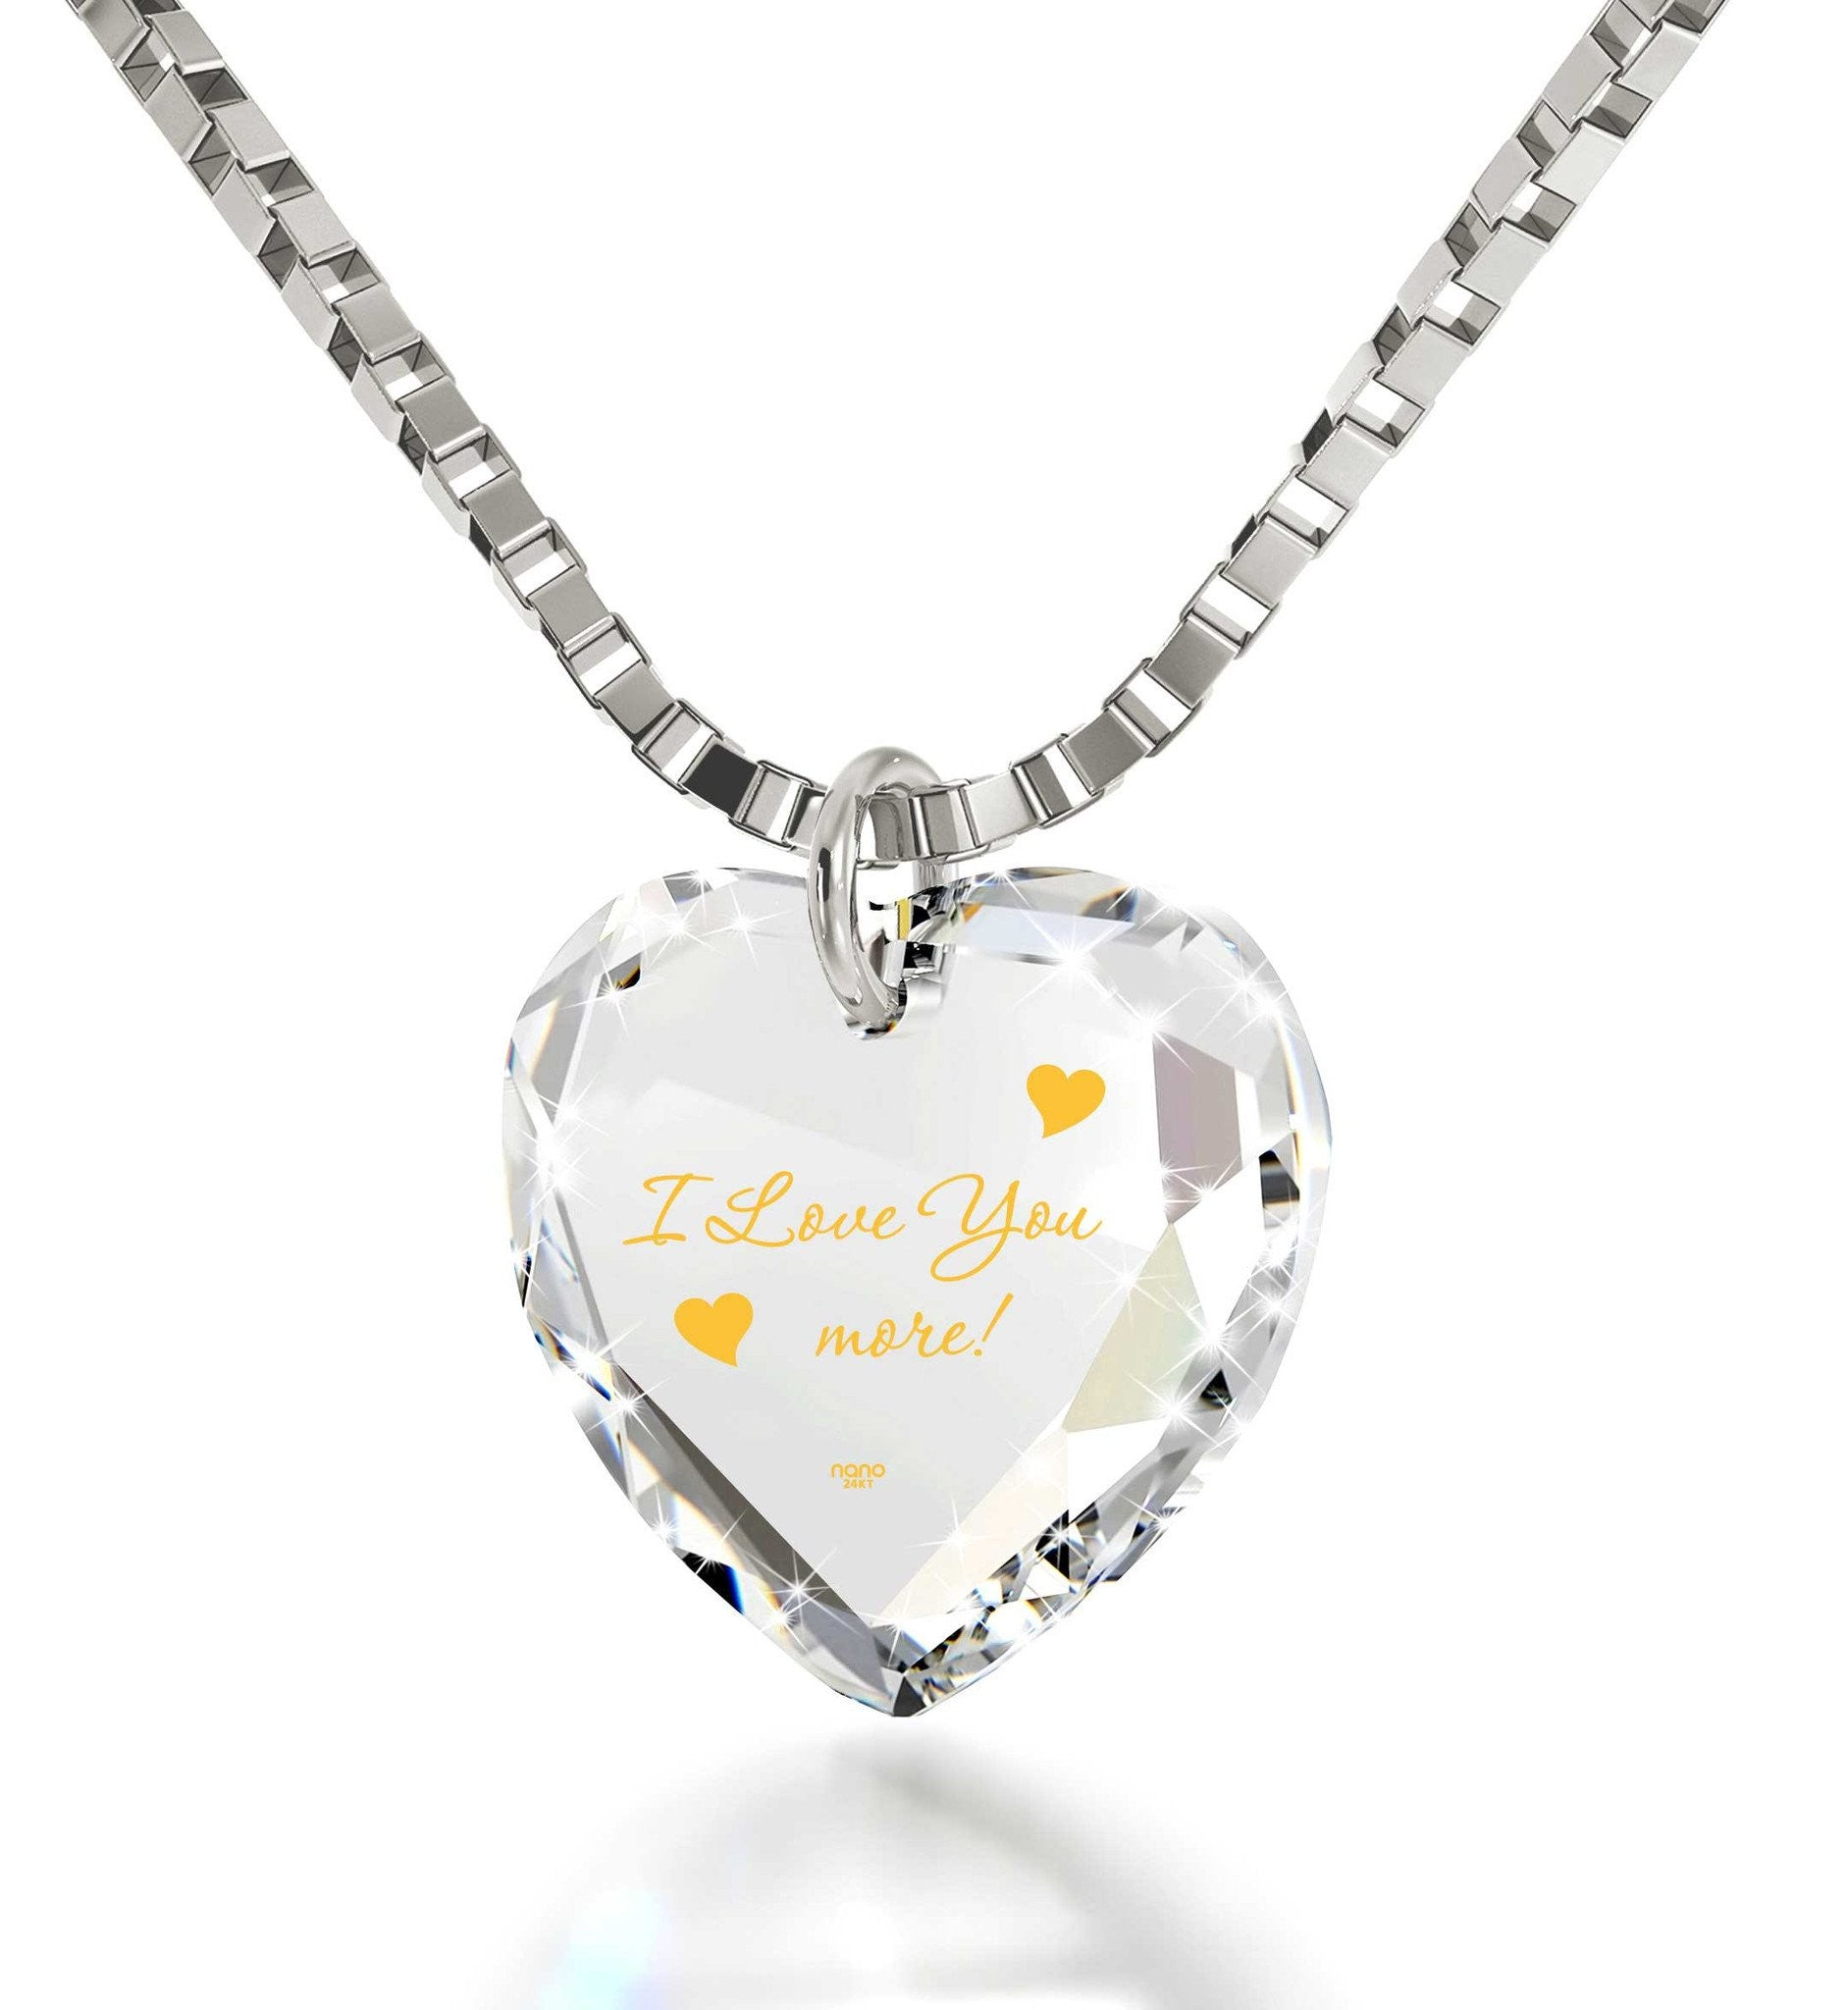 """I Love You More"" in 24k Gold, Xmas Ideas for Her, Birthday Ideas for Girlfriend,Swarovksi Crystal Jewelry"